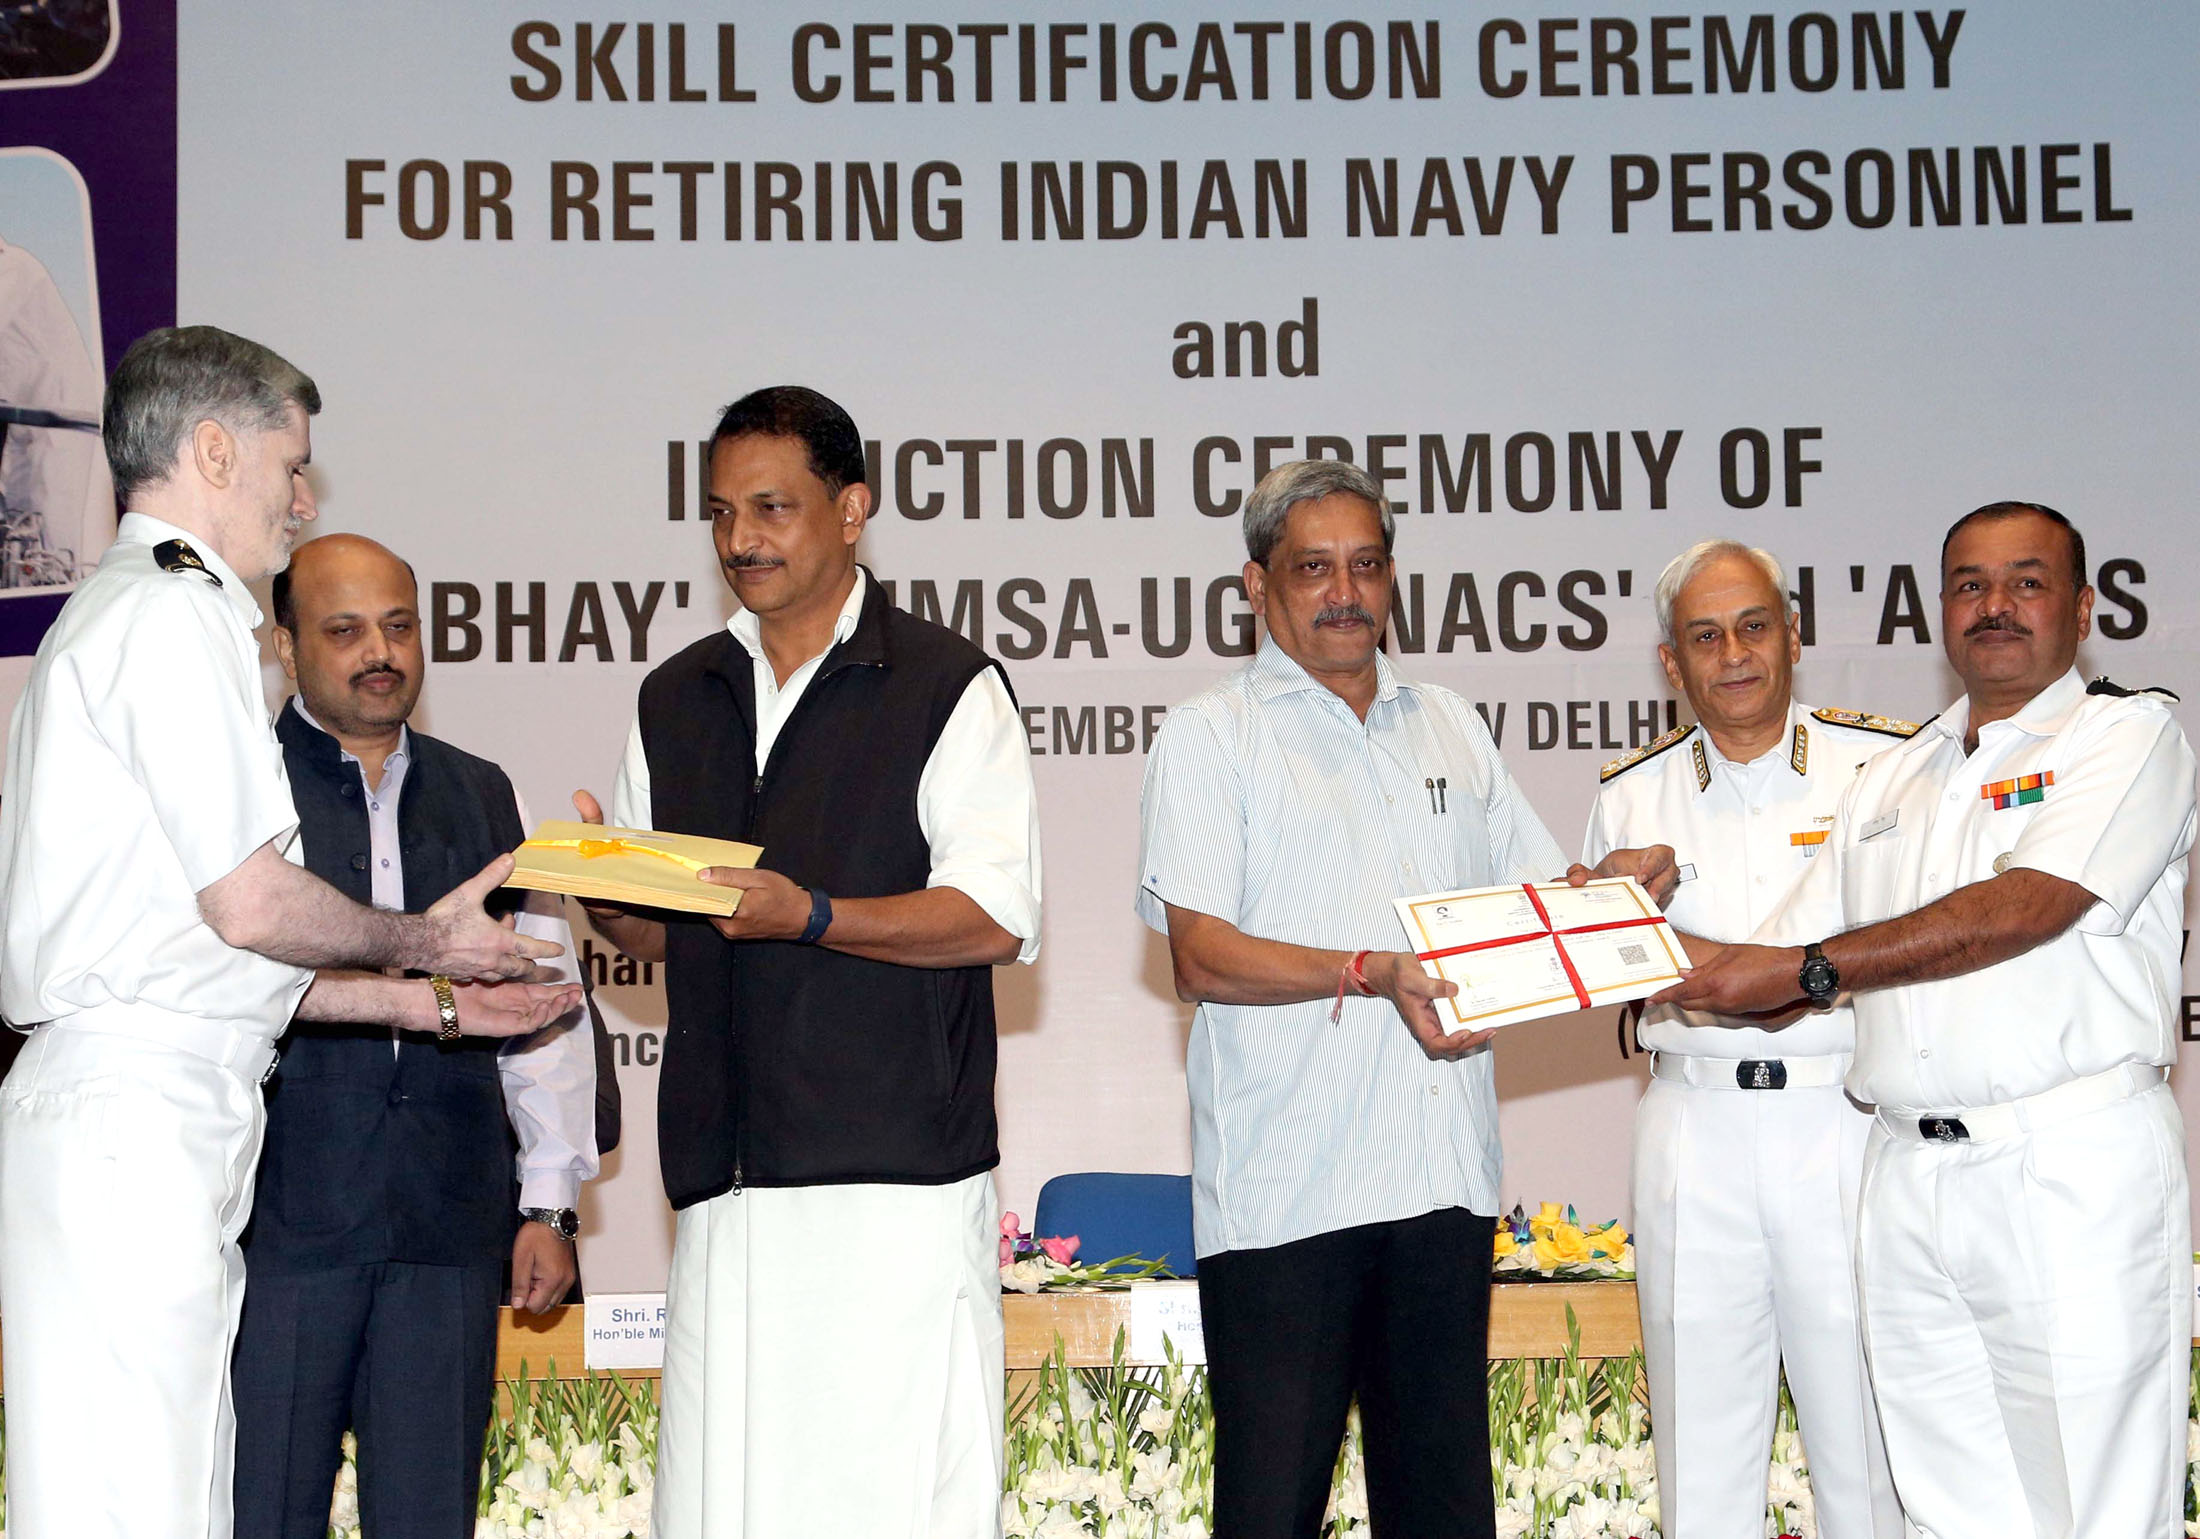 The Union Minister for Defence, Shri Manohar Parrikar and the Minister of State for Skill Development & Entrepreneurship (Independent Charge) and Parliamentary Affairs, Shri Rajiv Pratap Rudy jointly distributing the Skill Certificates and Placement Letters to retiring Navy Personnel, on the occasion of handing over of four indigenous Naval Systems, developed by DRDO to the Indian Navy and distribution of Skill Certificates and Placement letters to retiring Navy personnel, in New Delhi on November 18, 2016. 	The Chief of Naval Staff, Admiral Sunil Lanba is also seen.